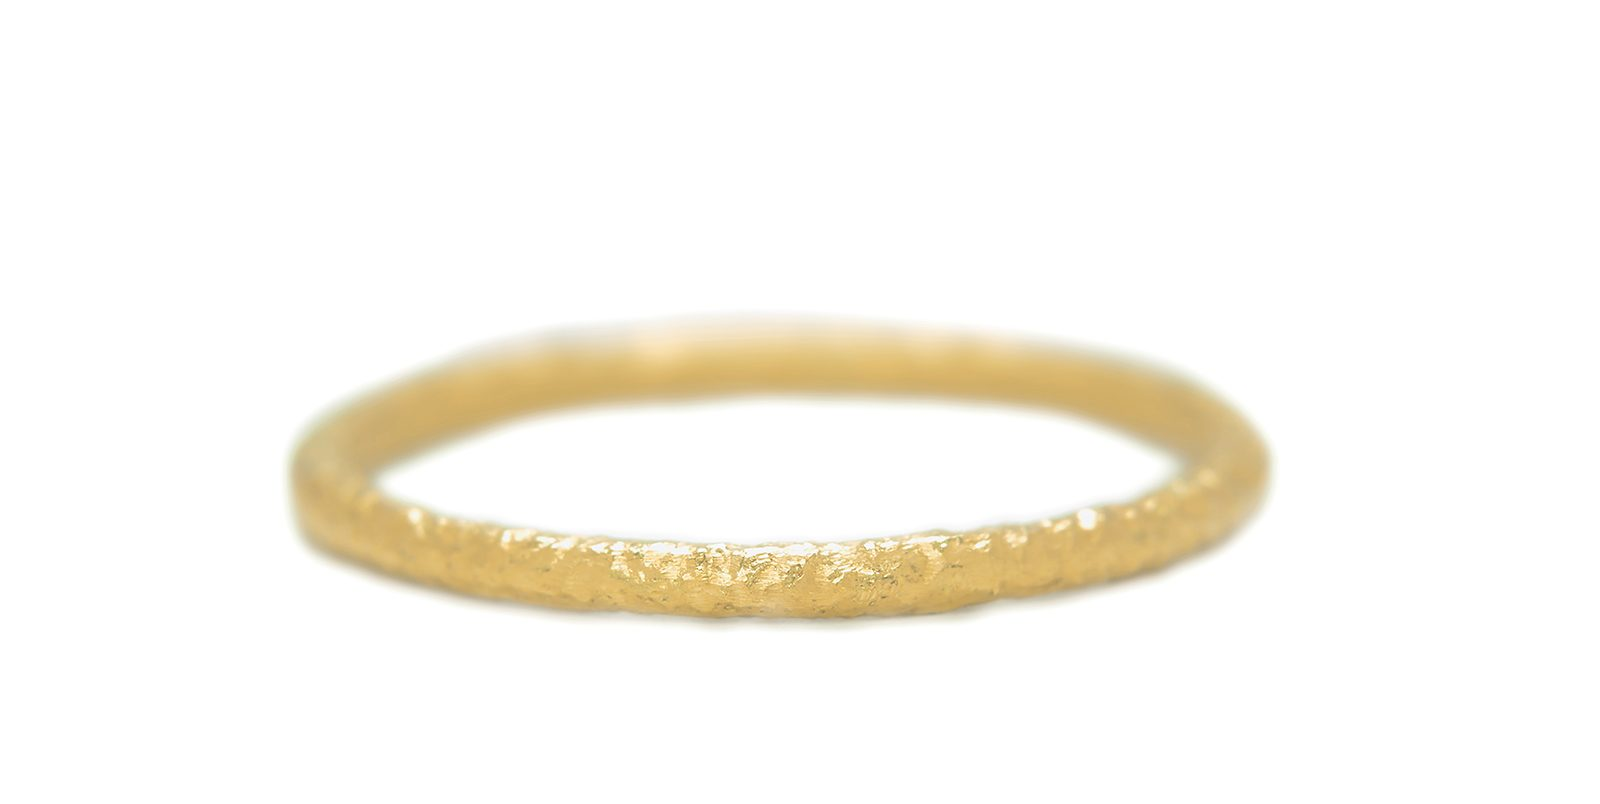 Textured Gold Ring 1.5mm